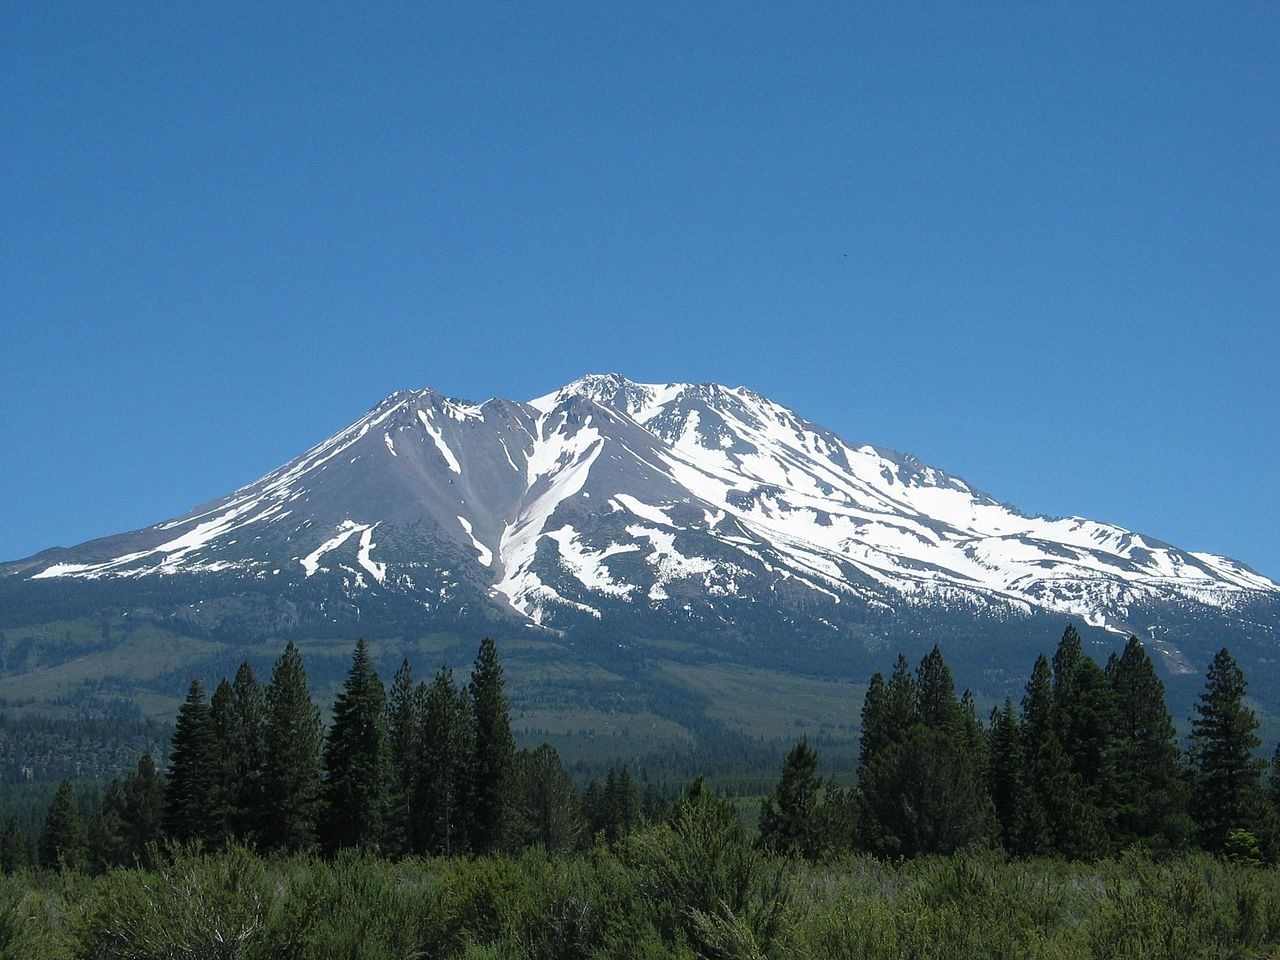 mount shasta dating Mount shasta city is a small town in northern california spiritual seekers are drawn to the myriad of metaphysical shops, ample outdoor activity and subtle pull to the magic of the mountain some debate surrounds exactly which chakra of the world shasta embodies, but seekers, healers, yogis and mystics take refuge in the quiet and.